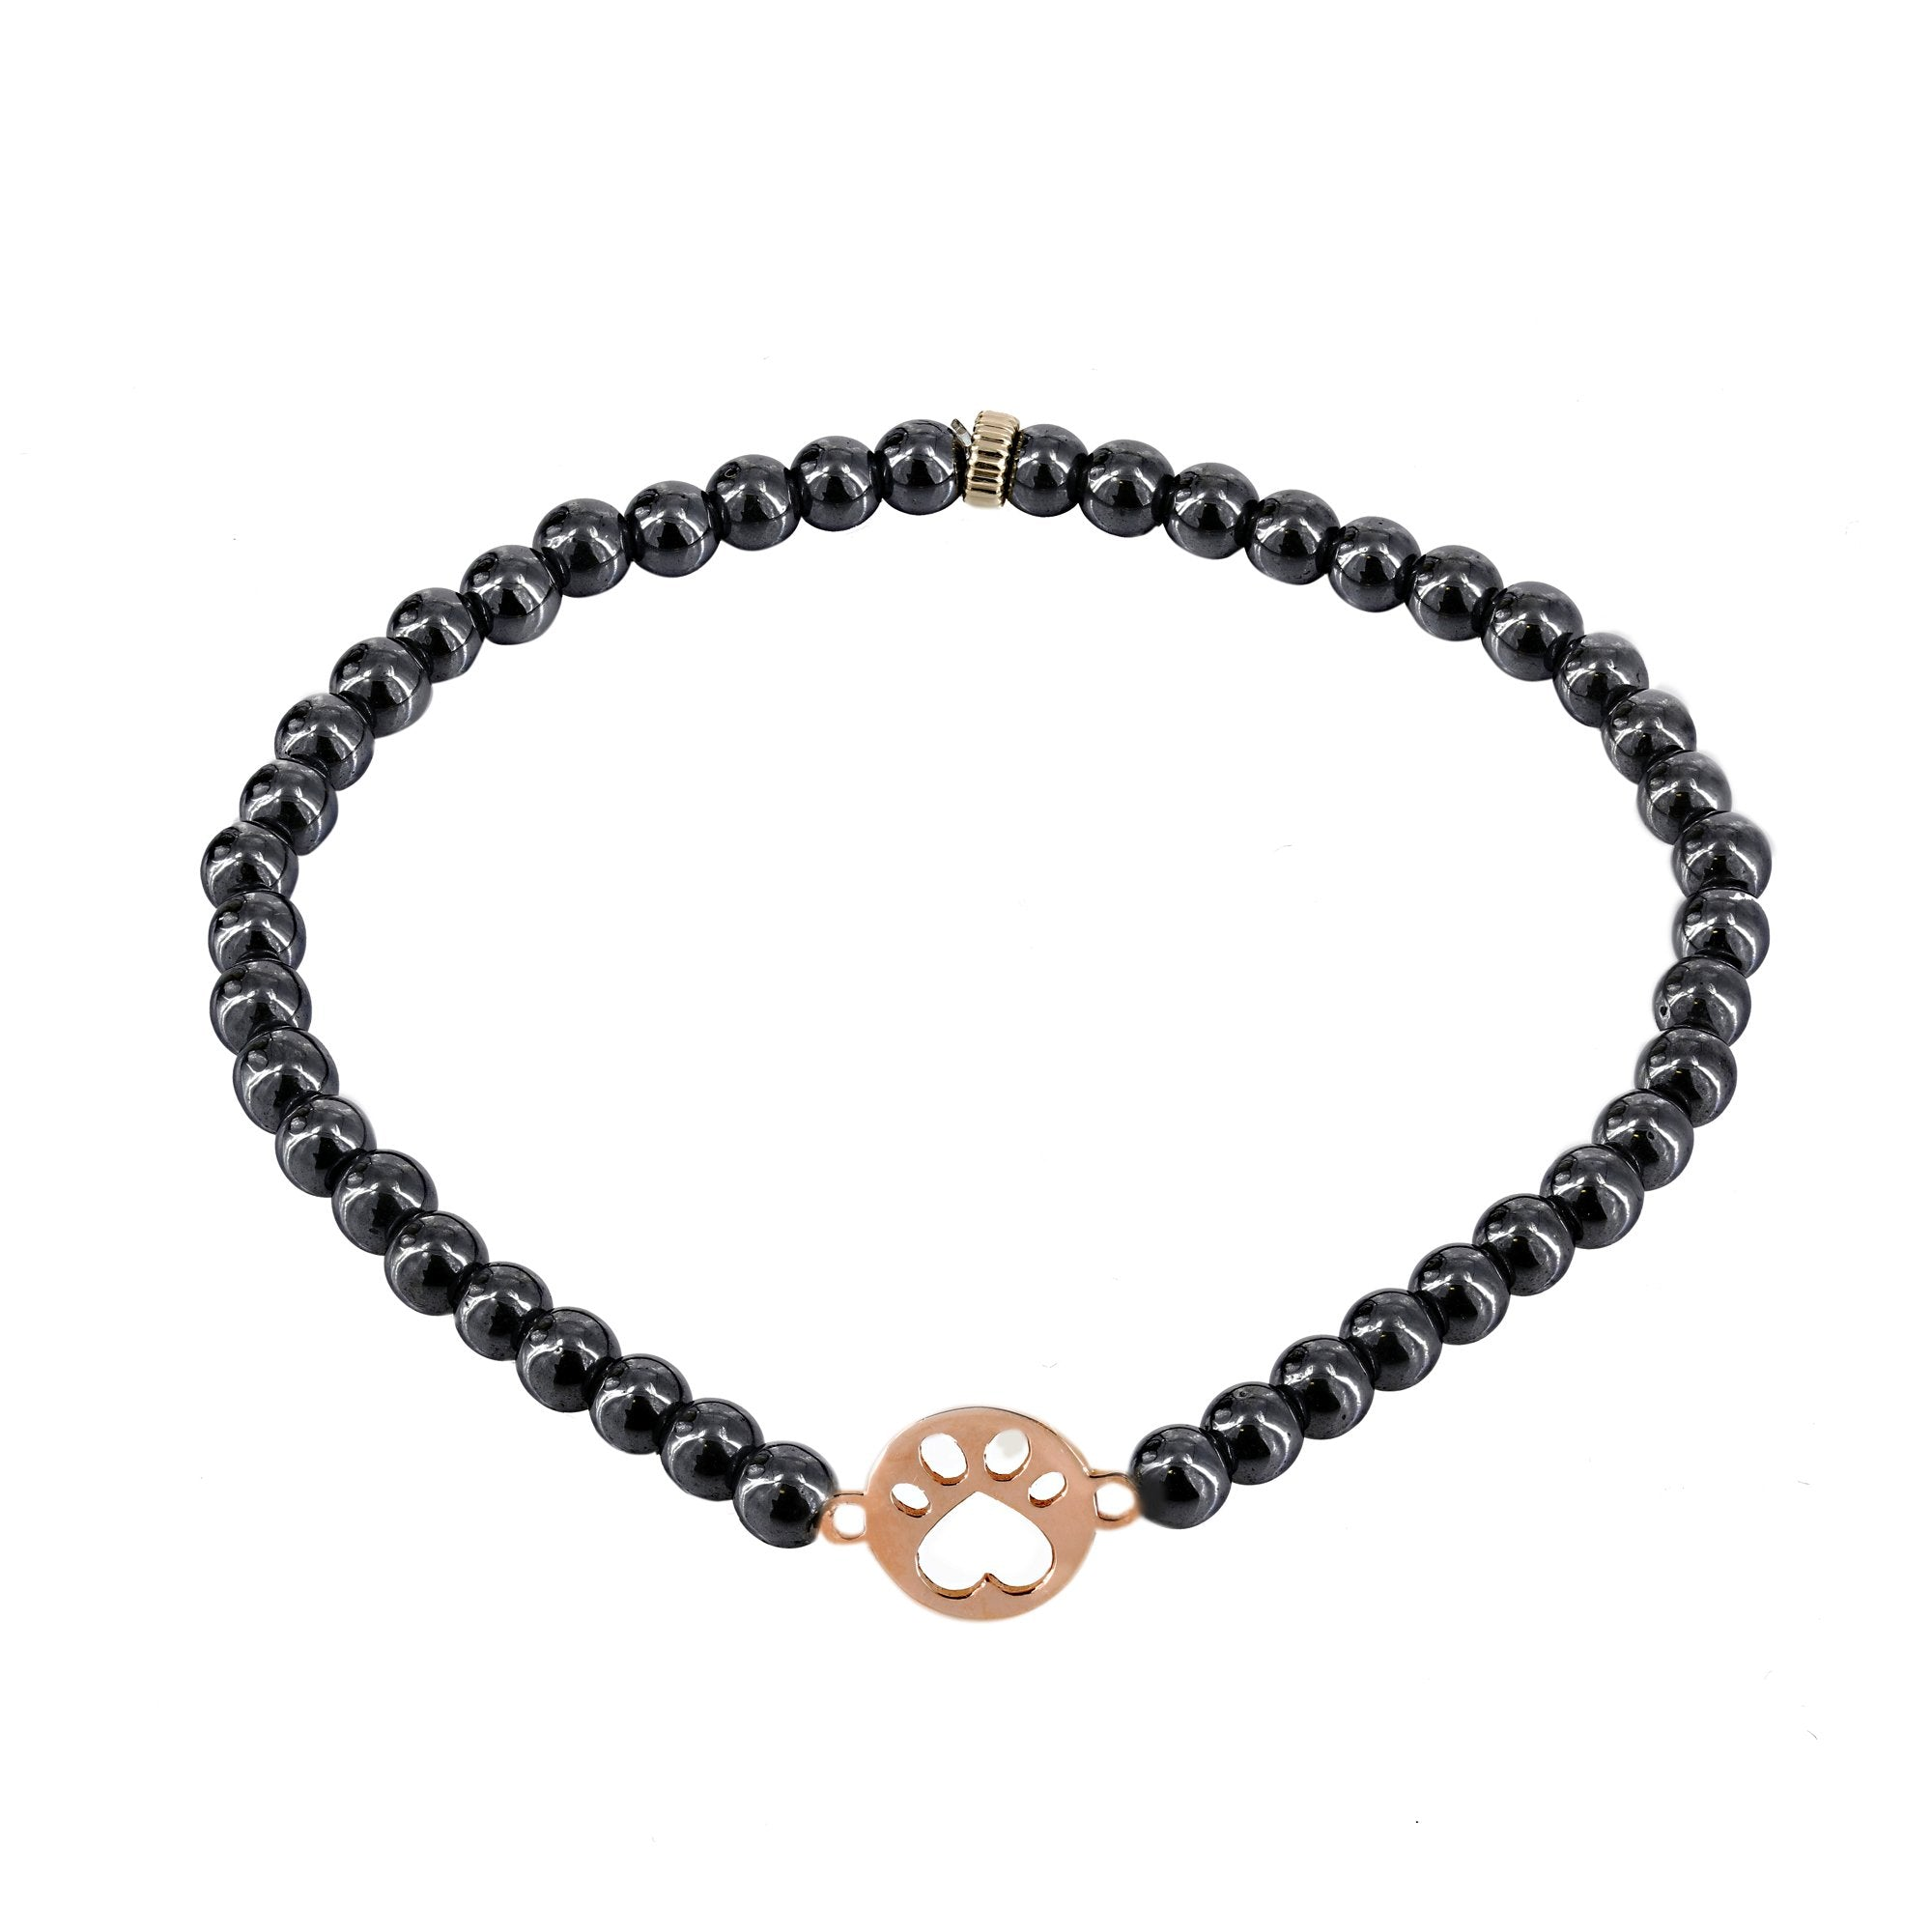 Our Cause for Paws 14k Gold Bead Bracelet